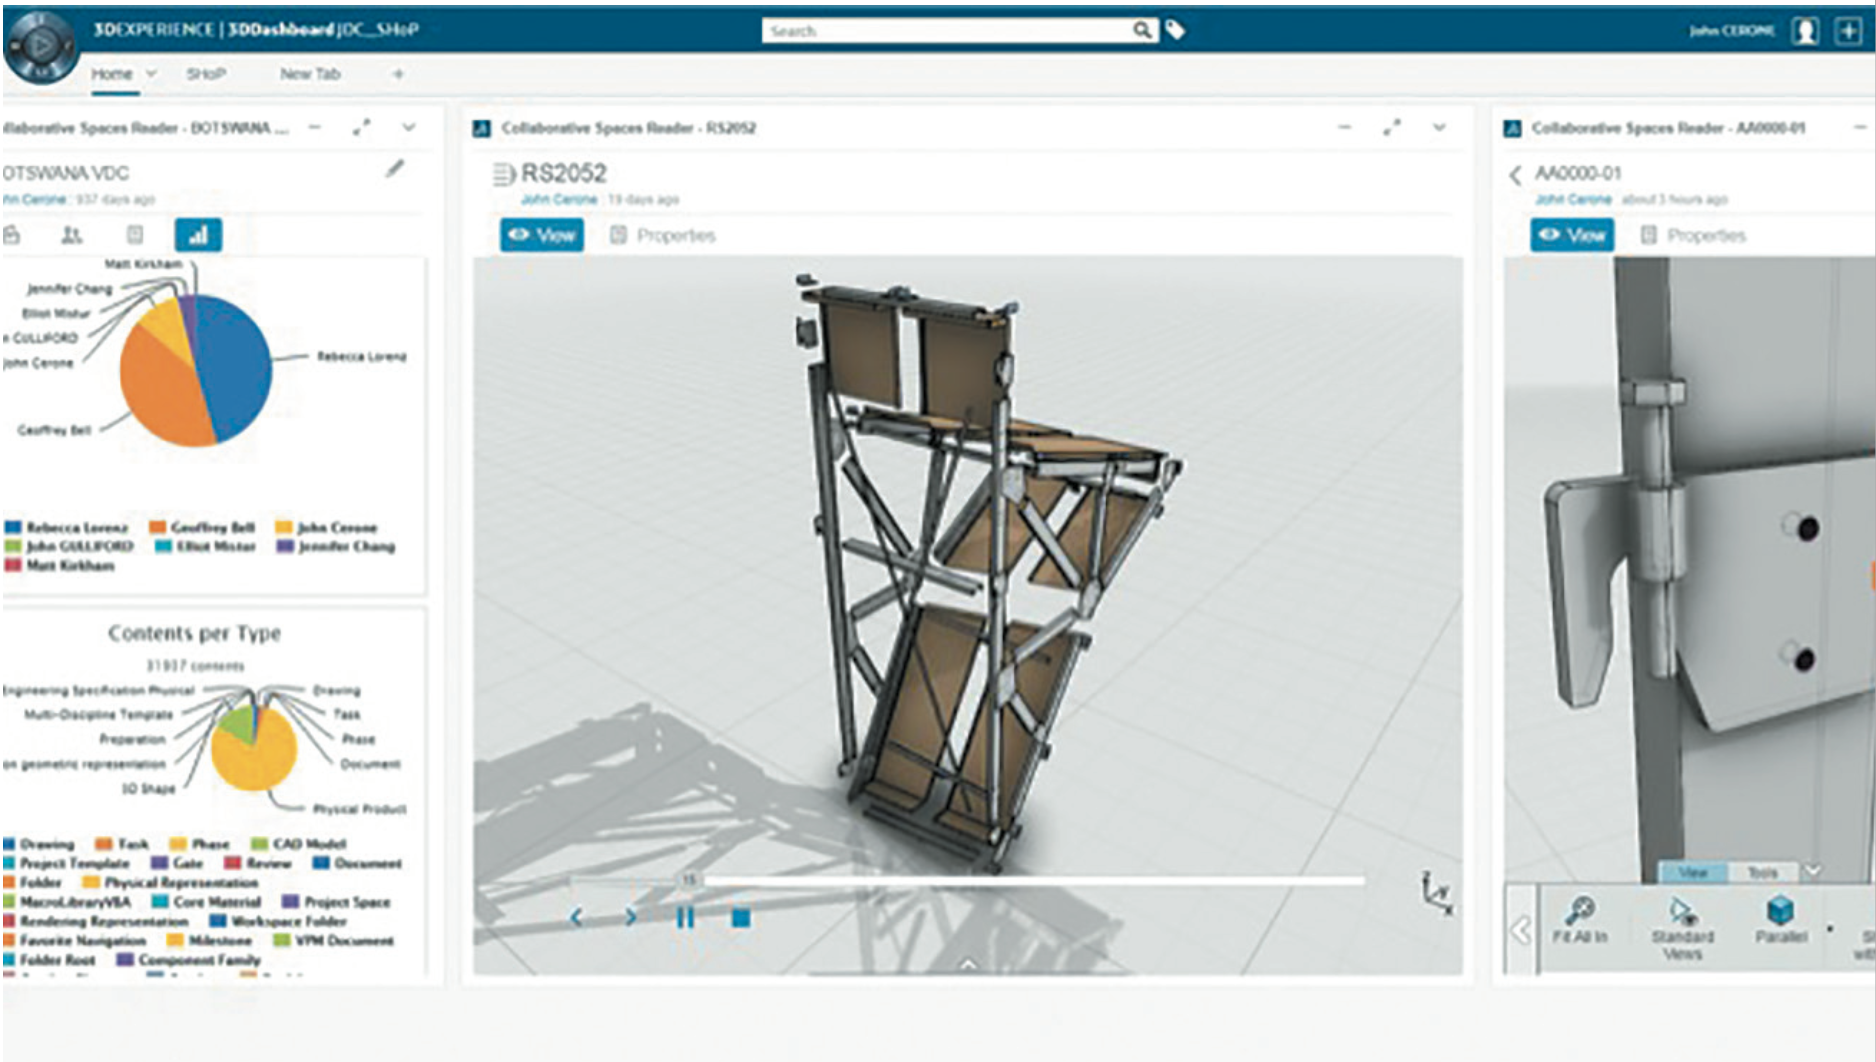 SHoP uses the 3DEXPERIENCE platform's live dashboarding capabilities with ENOVIA to allow people with specific roles and interests to participate in the project at various stages and maturities.